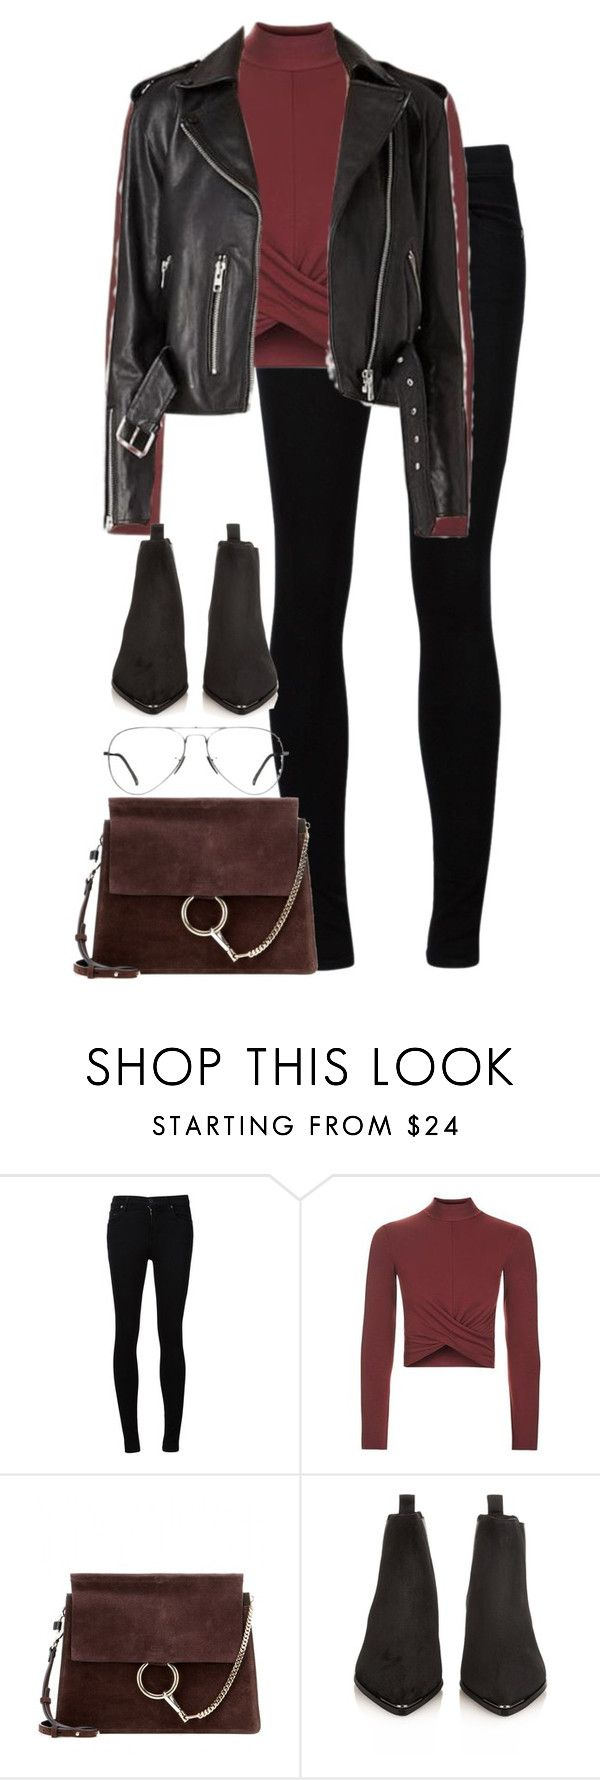 """""""Untitled #2989"""" by elenaday on Polyvore featuring Citizens of Humanity, Topshop, Chloé, Acne Studios and Ray-Ban"""